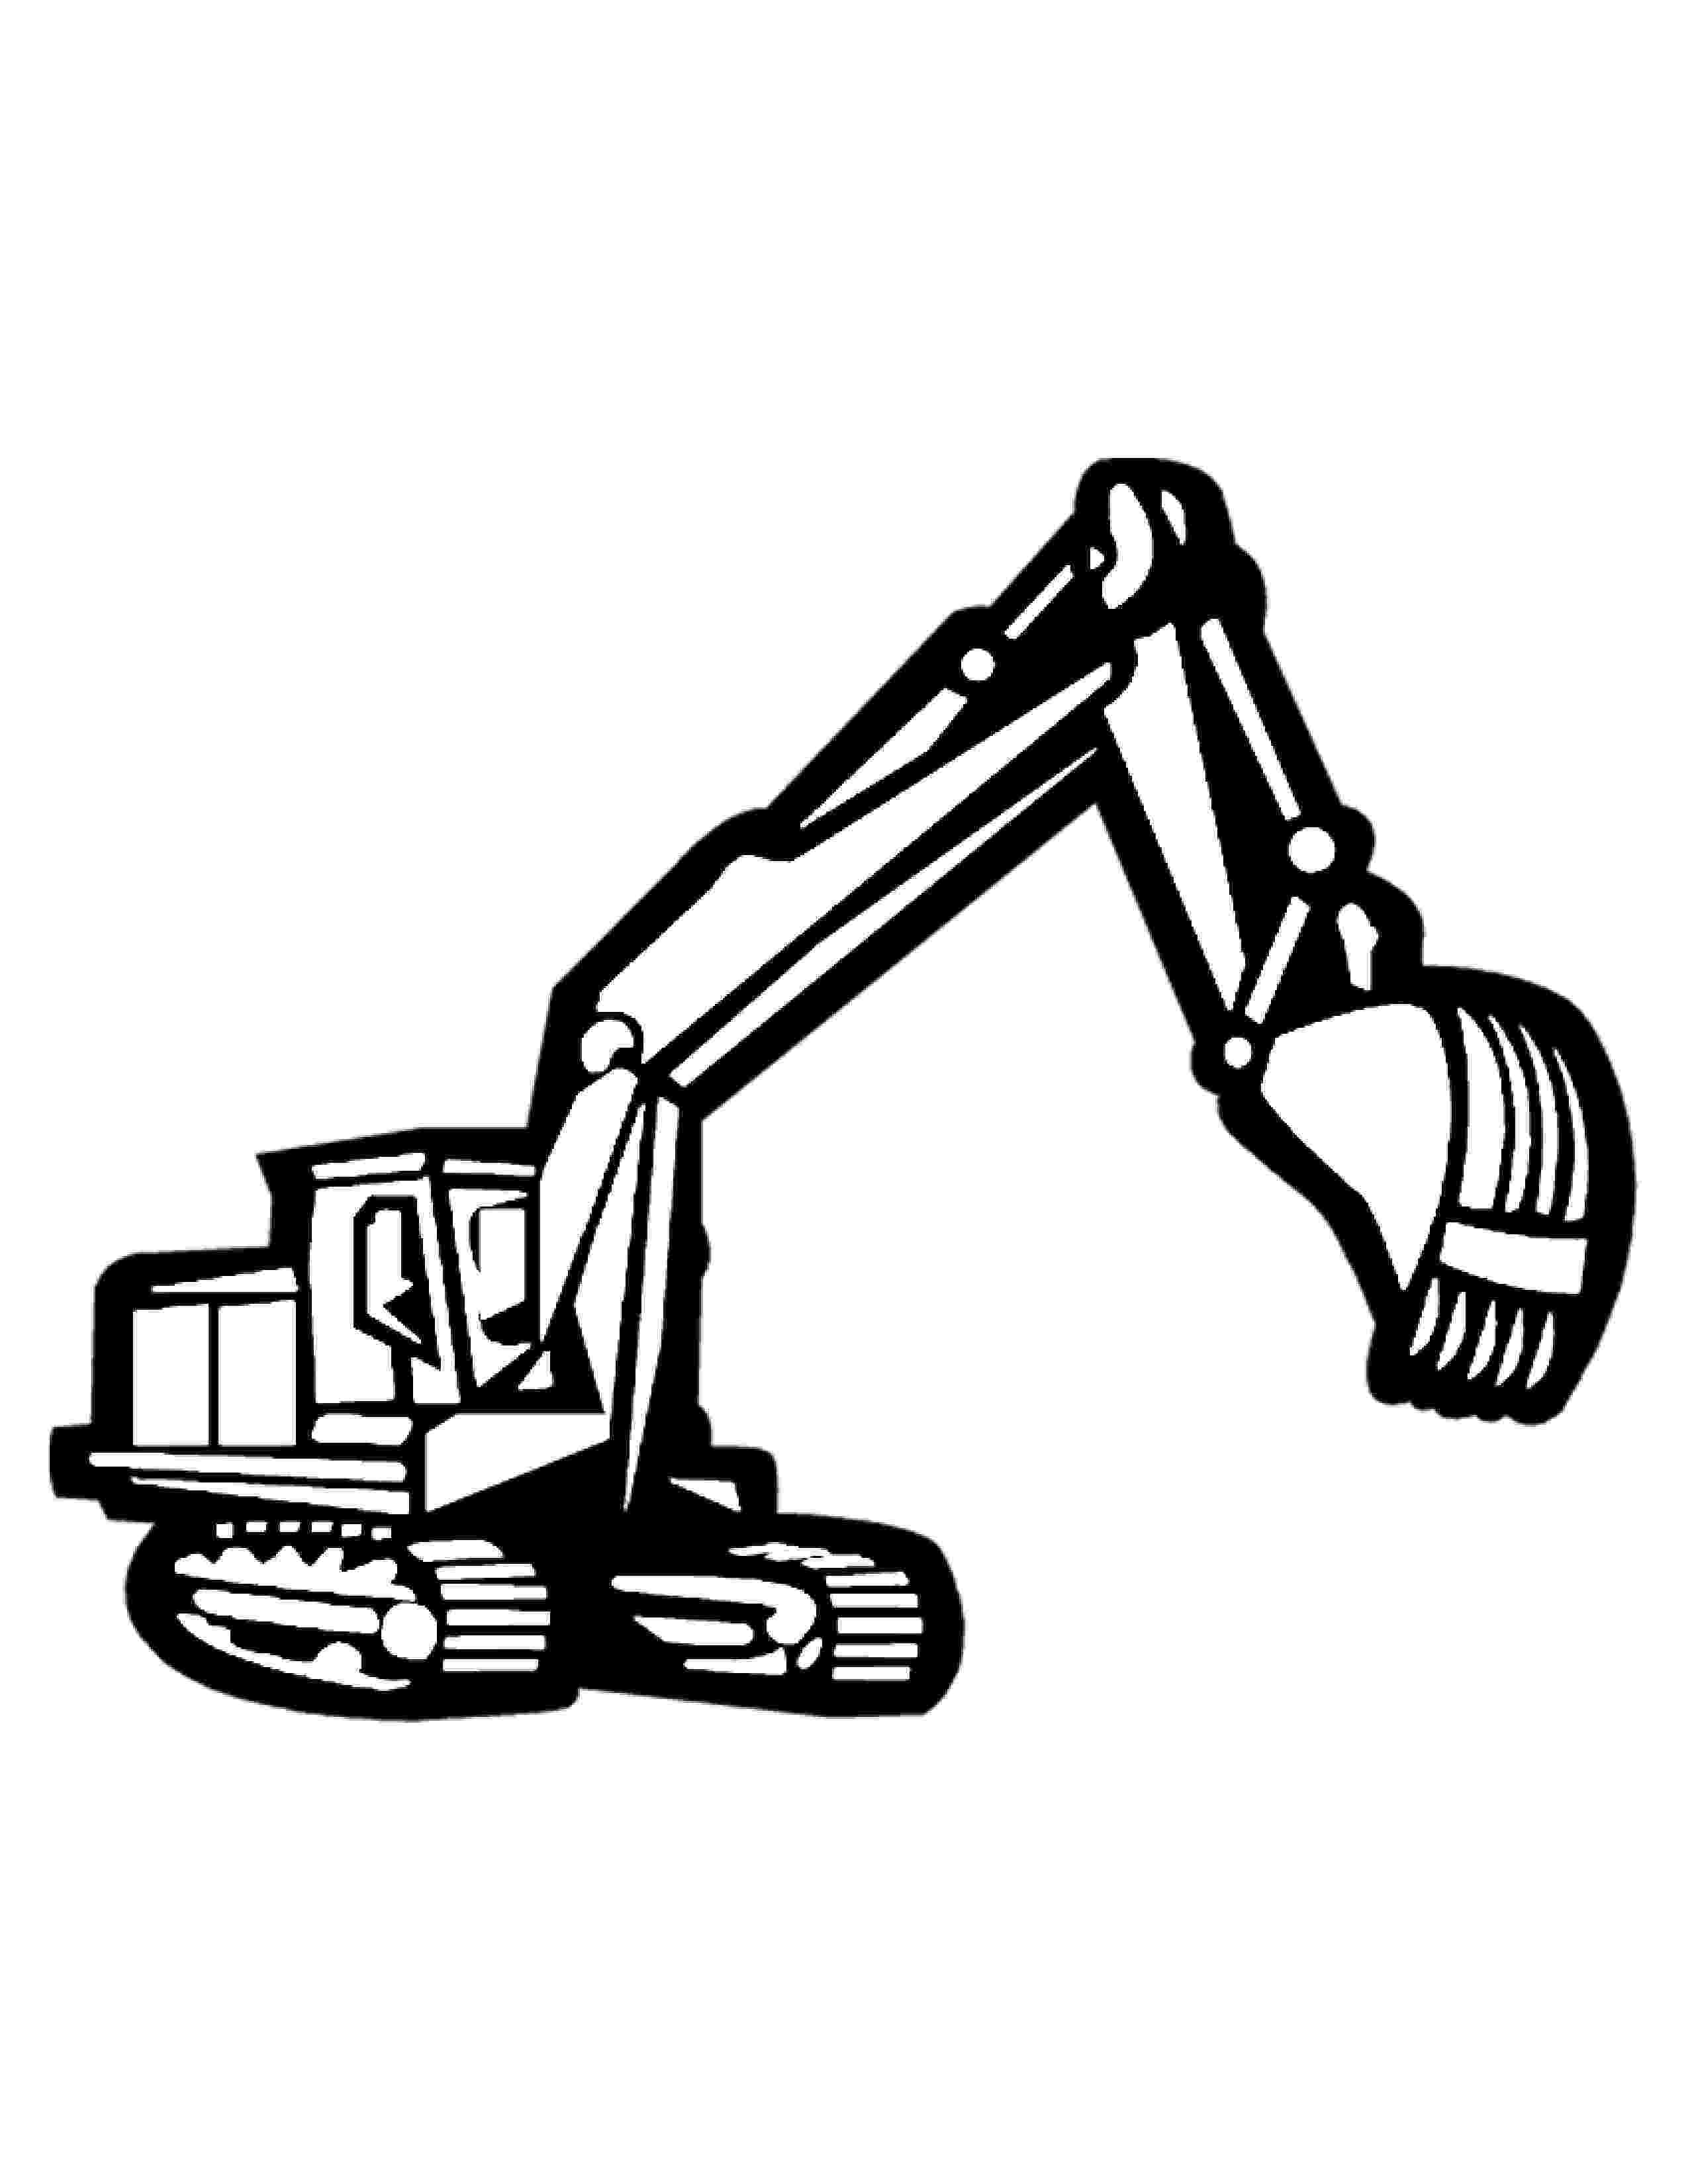 construction trucks coloring pages construction vehicles coloring pages download and print coloring trucks pages construction